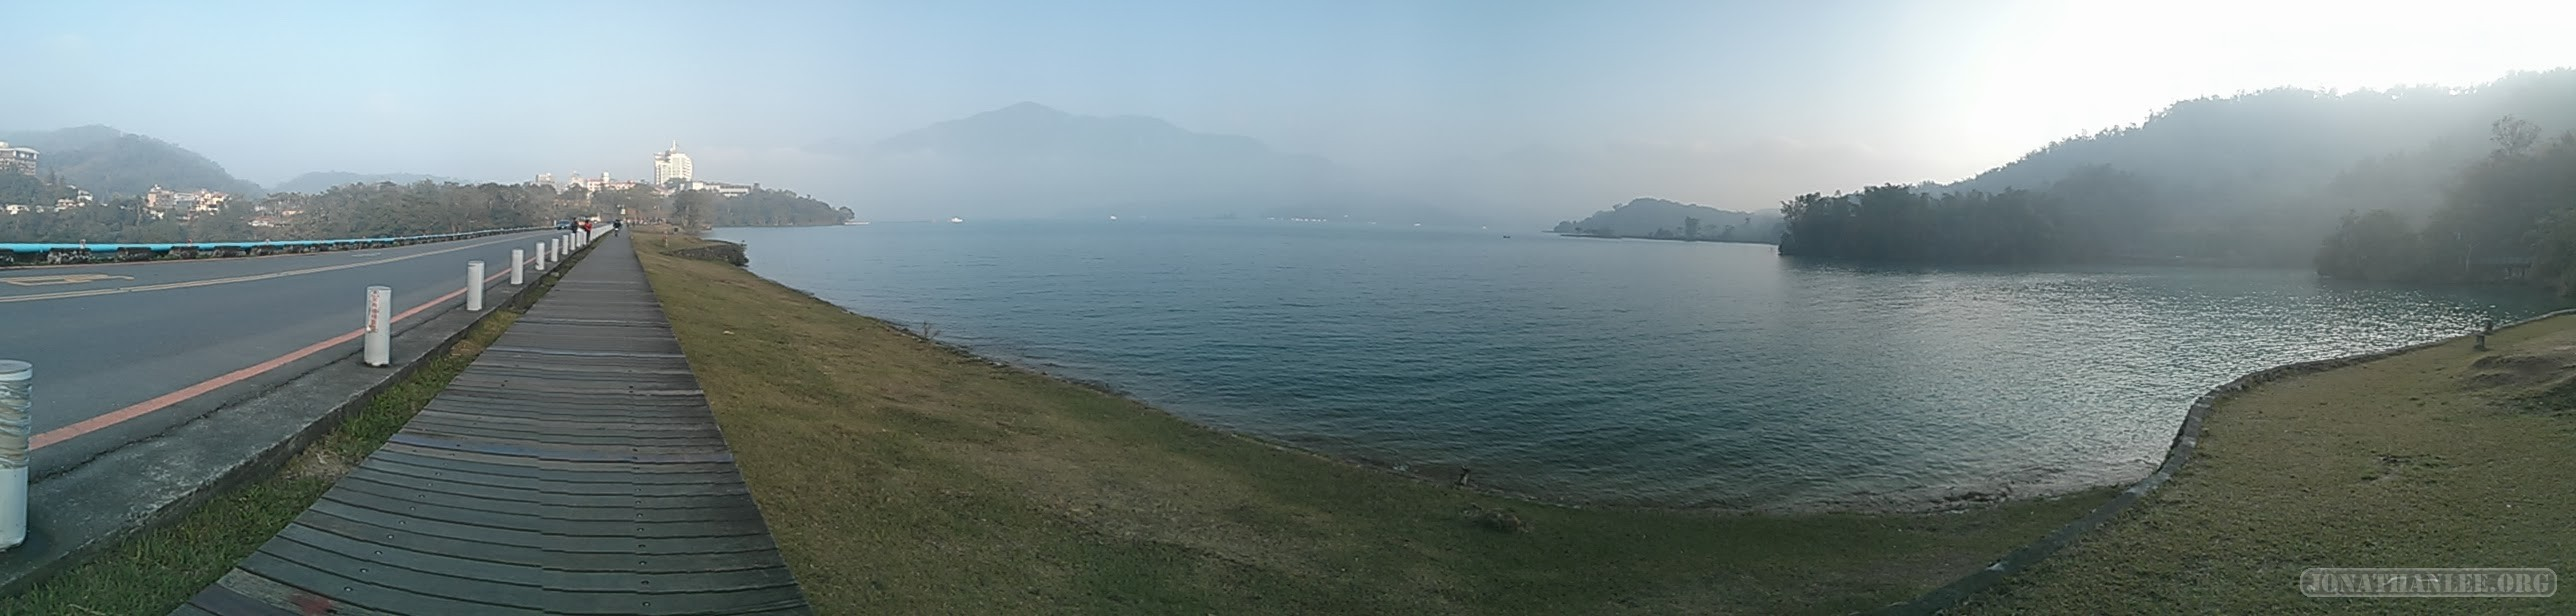 Sun Moon Lake - panorama scenery 7